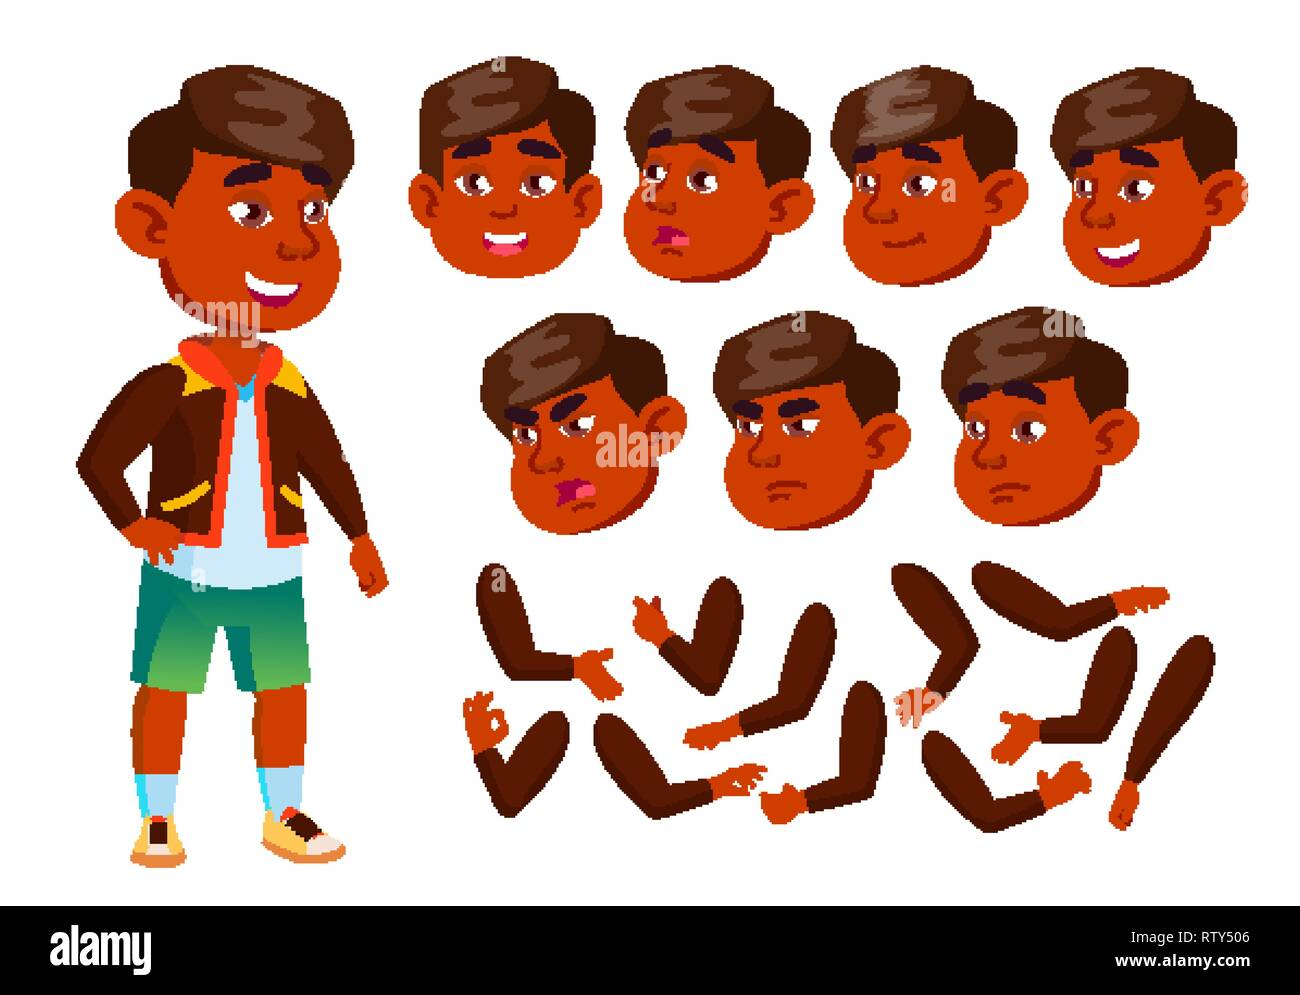 Indian Boy, Child, Kid, Teen Vector. Cheerful Pupil. Face Emotions, Various Gestures. Animation Creation Set. Isolated Flat Cartoon Character - Stock Image